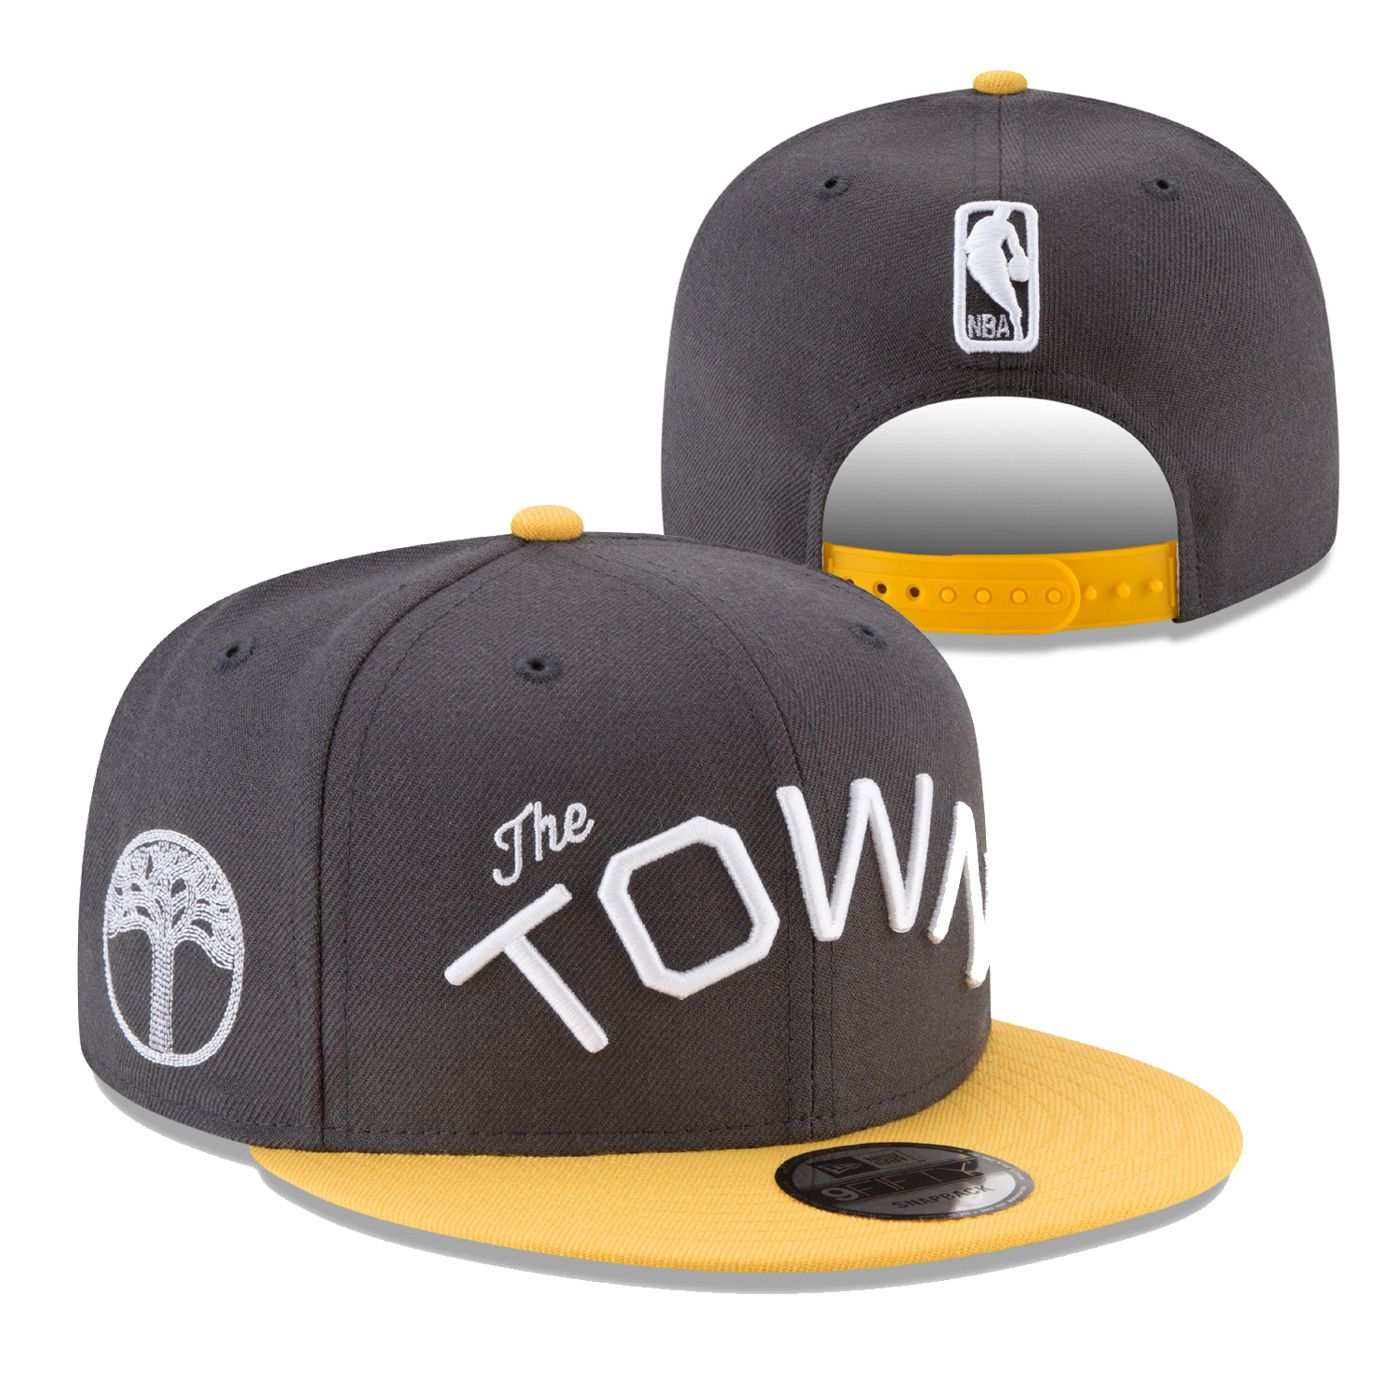 4f070bb5eae Golden State Warriors New Era 'The Town' Wordmark 2-Tone 9FIFTY Snapback -  Slate Gold